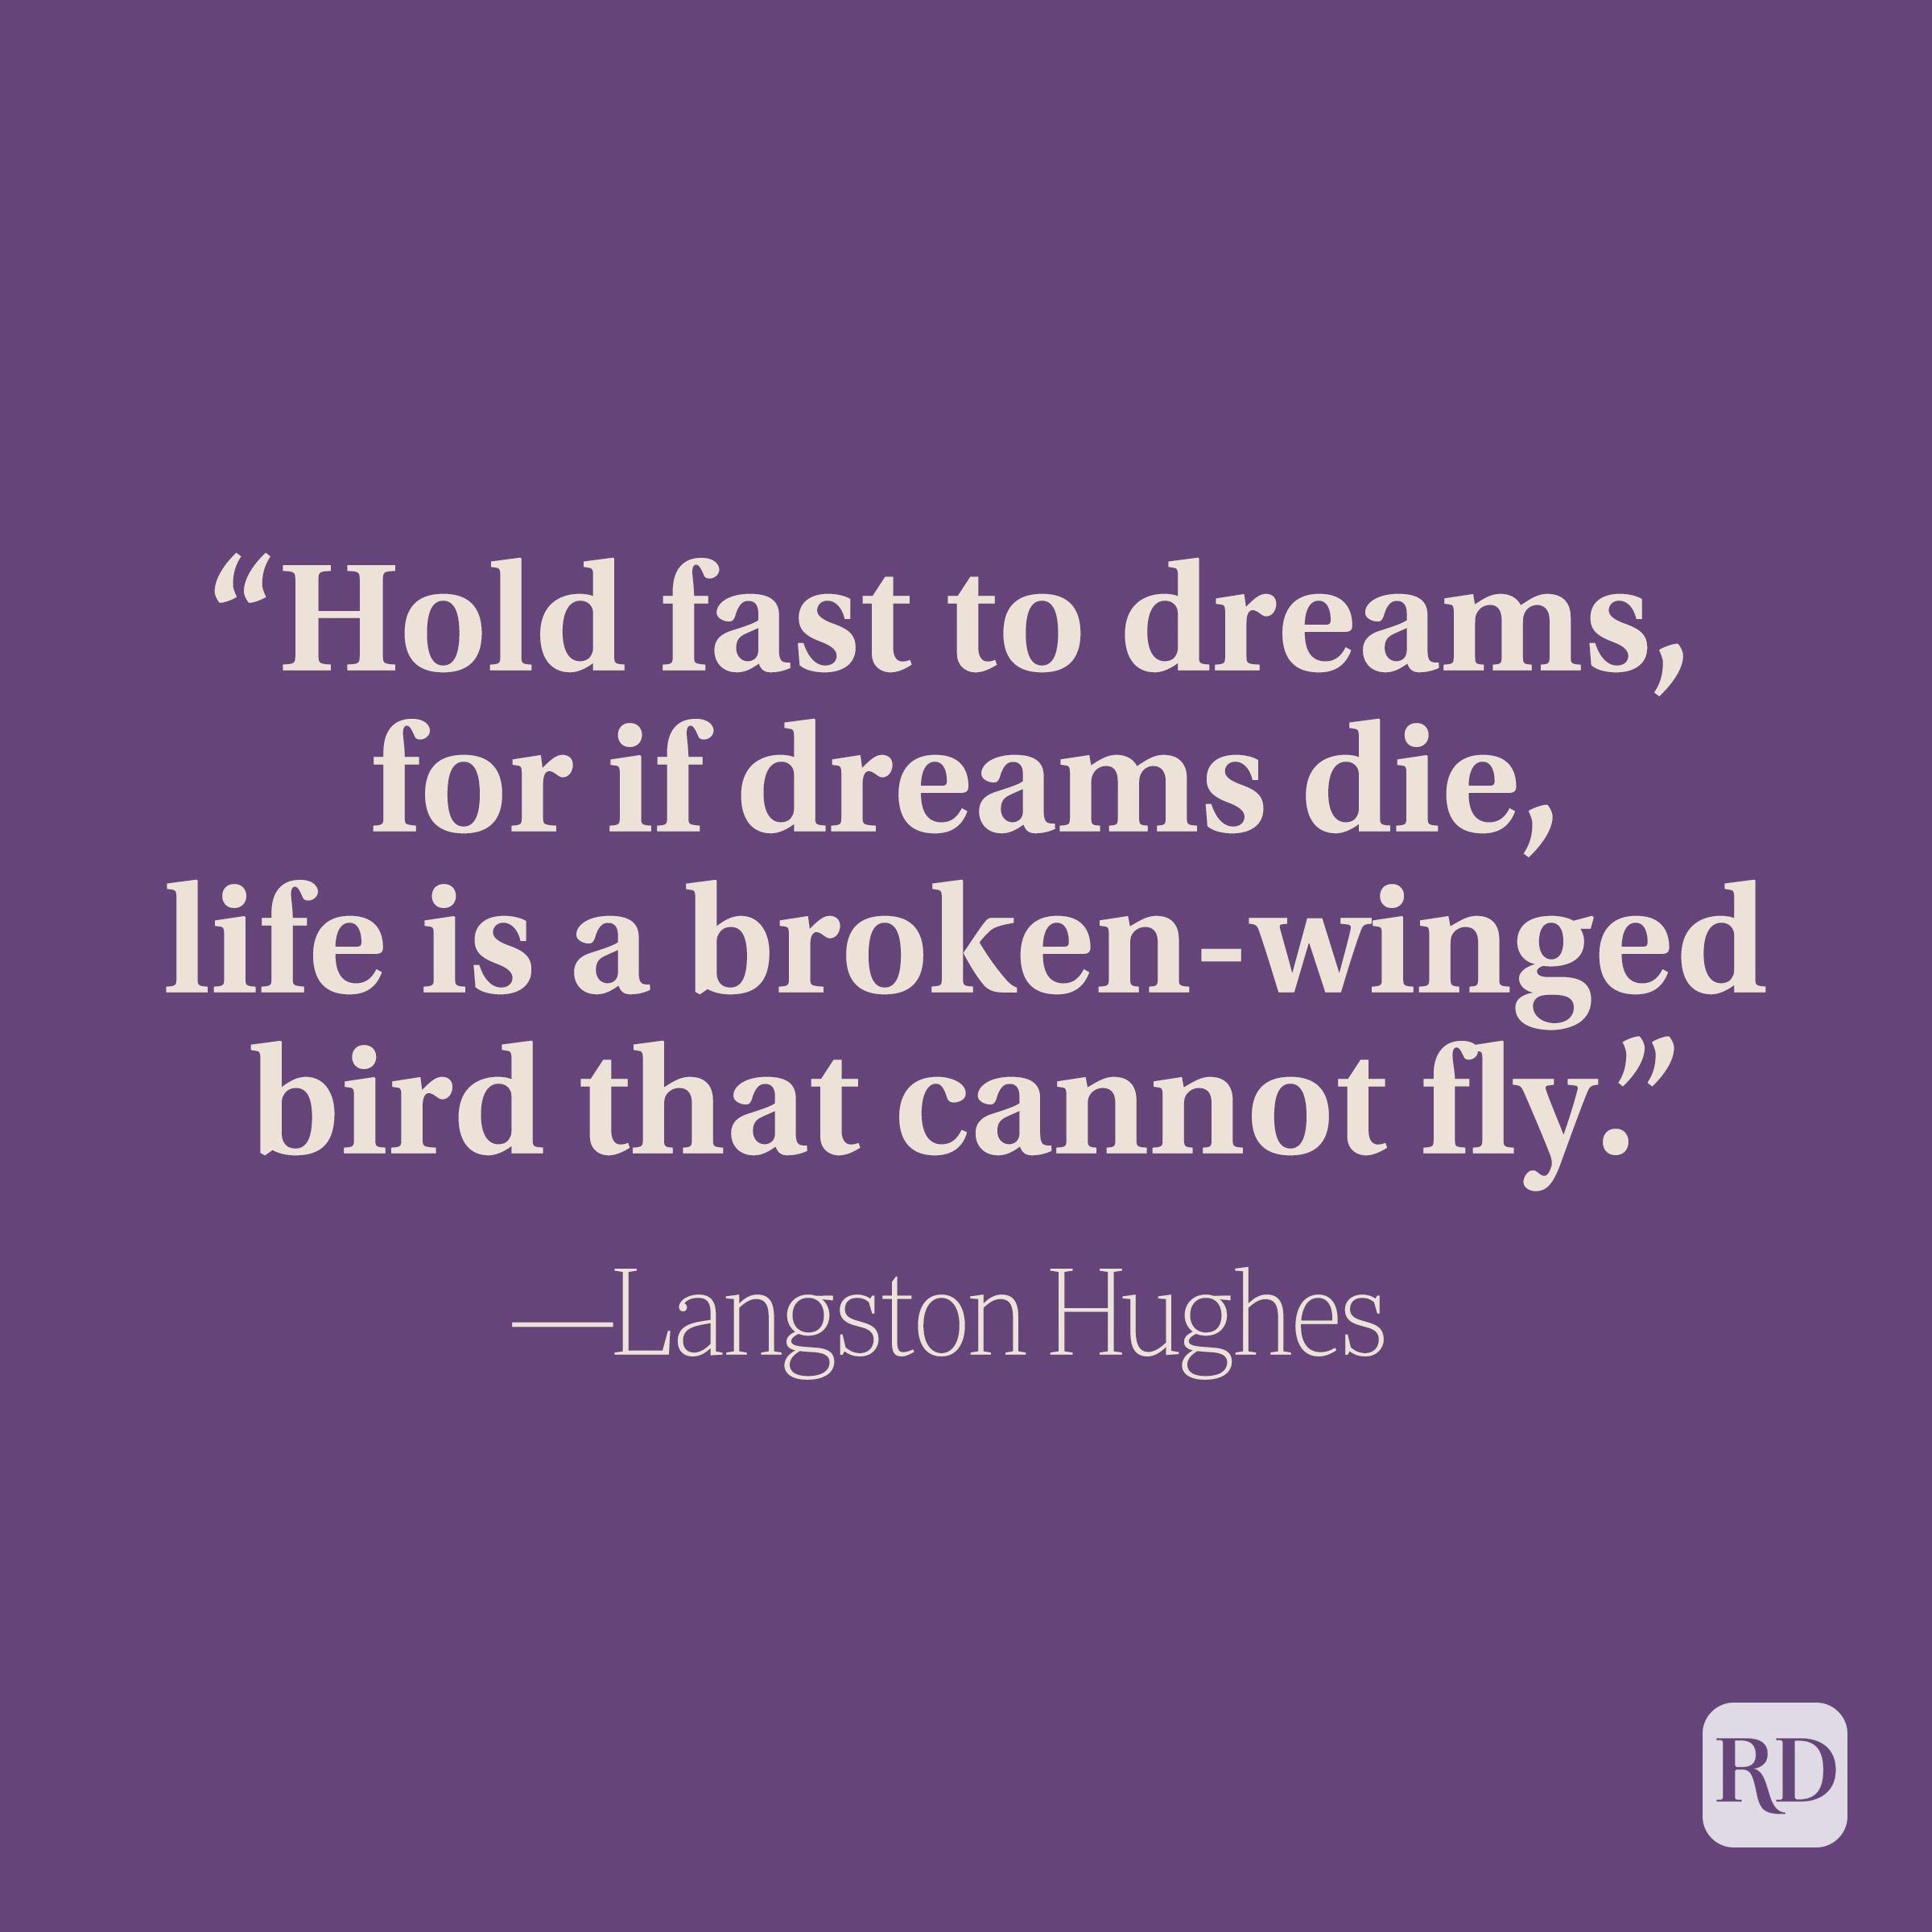 """""""Hold fast to dreams, for if dreams die, life is a broken-winged bird that cannot fly."""" —Langston Hughes"""